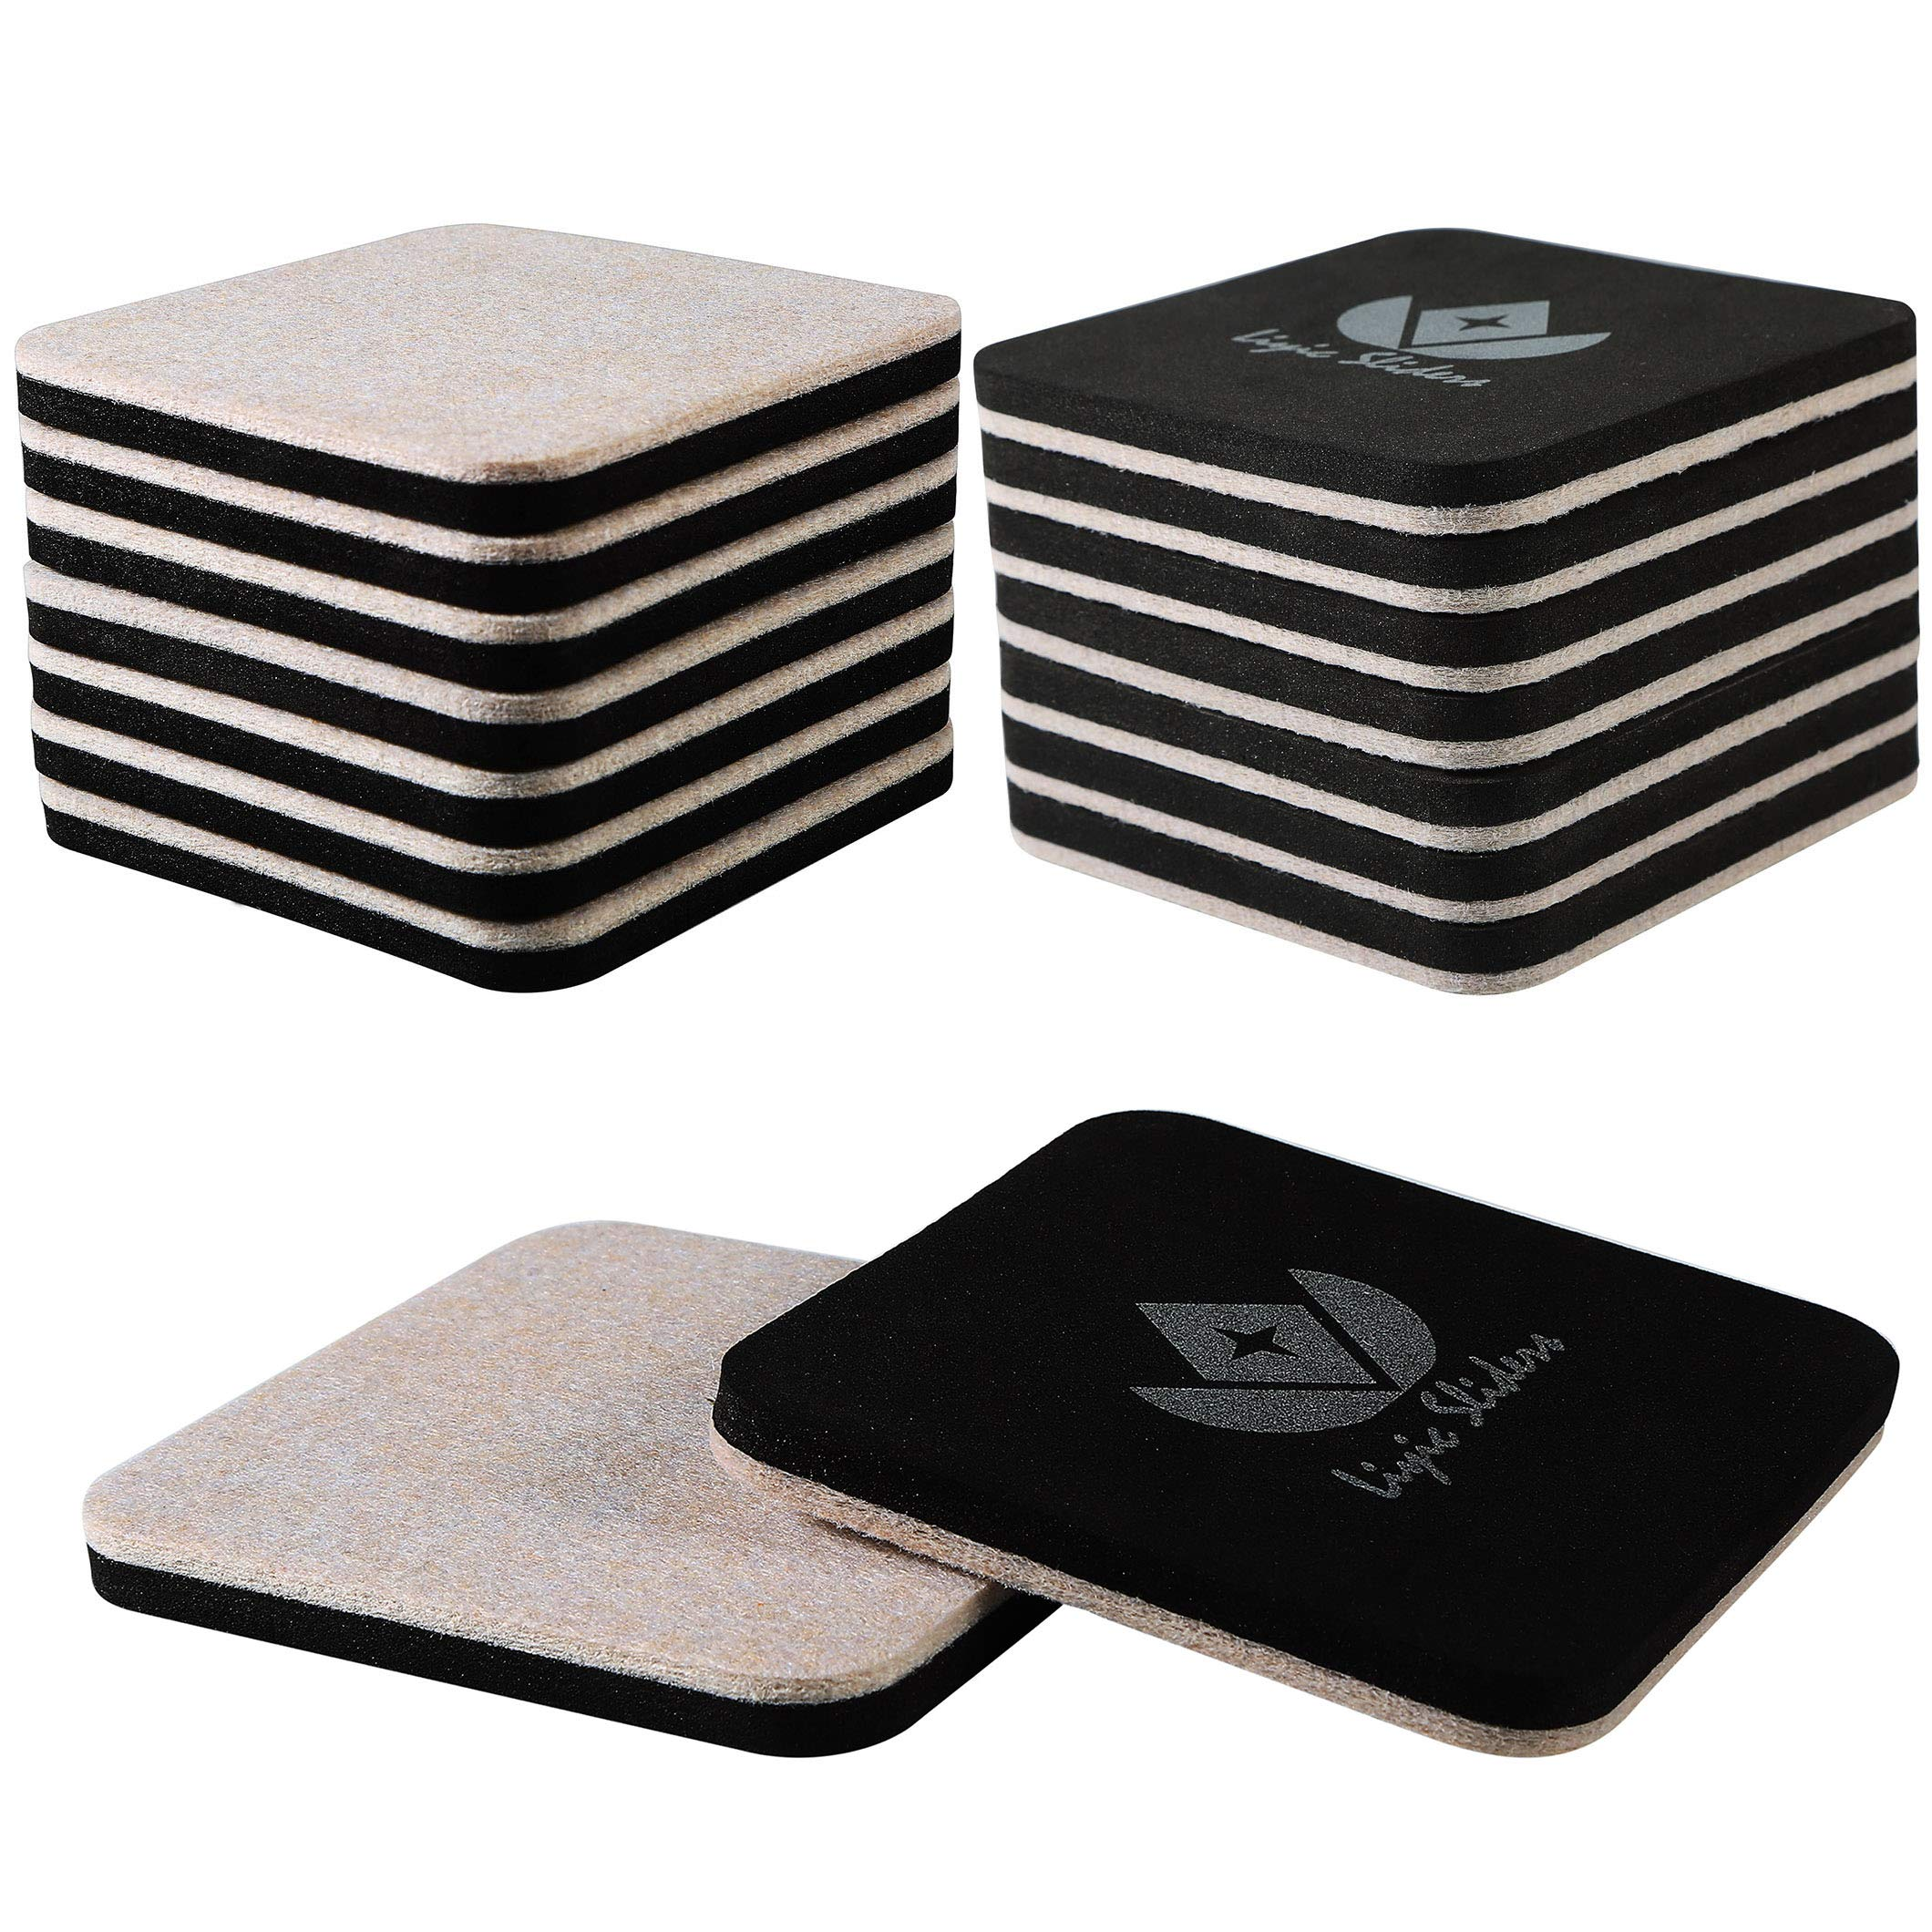 Liyic 4in.Square 16 Pack Felt Sliders for Hard Surfaces-Felt Furniture Sliders - Heavy Duty Sliders - Reusable Hardwood Floor Sliders -Furniture Moving Sliders-Sofa Sliders Gliders Glides Movers